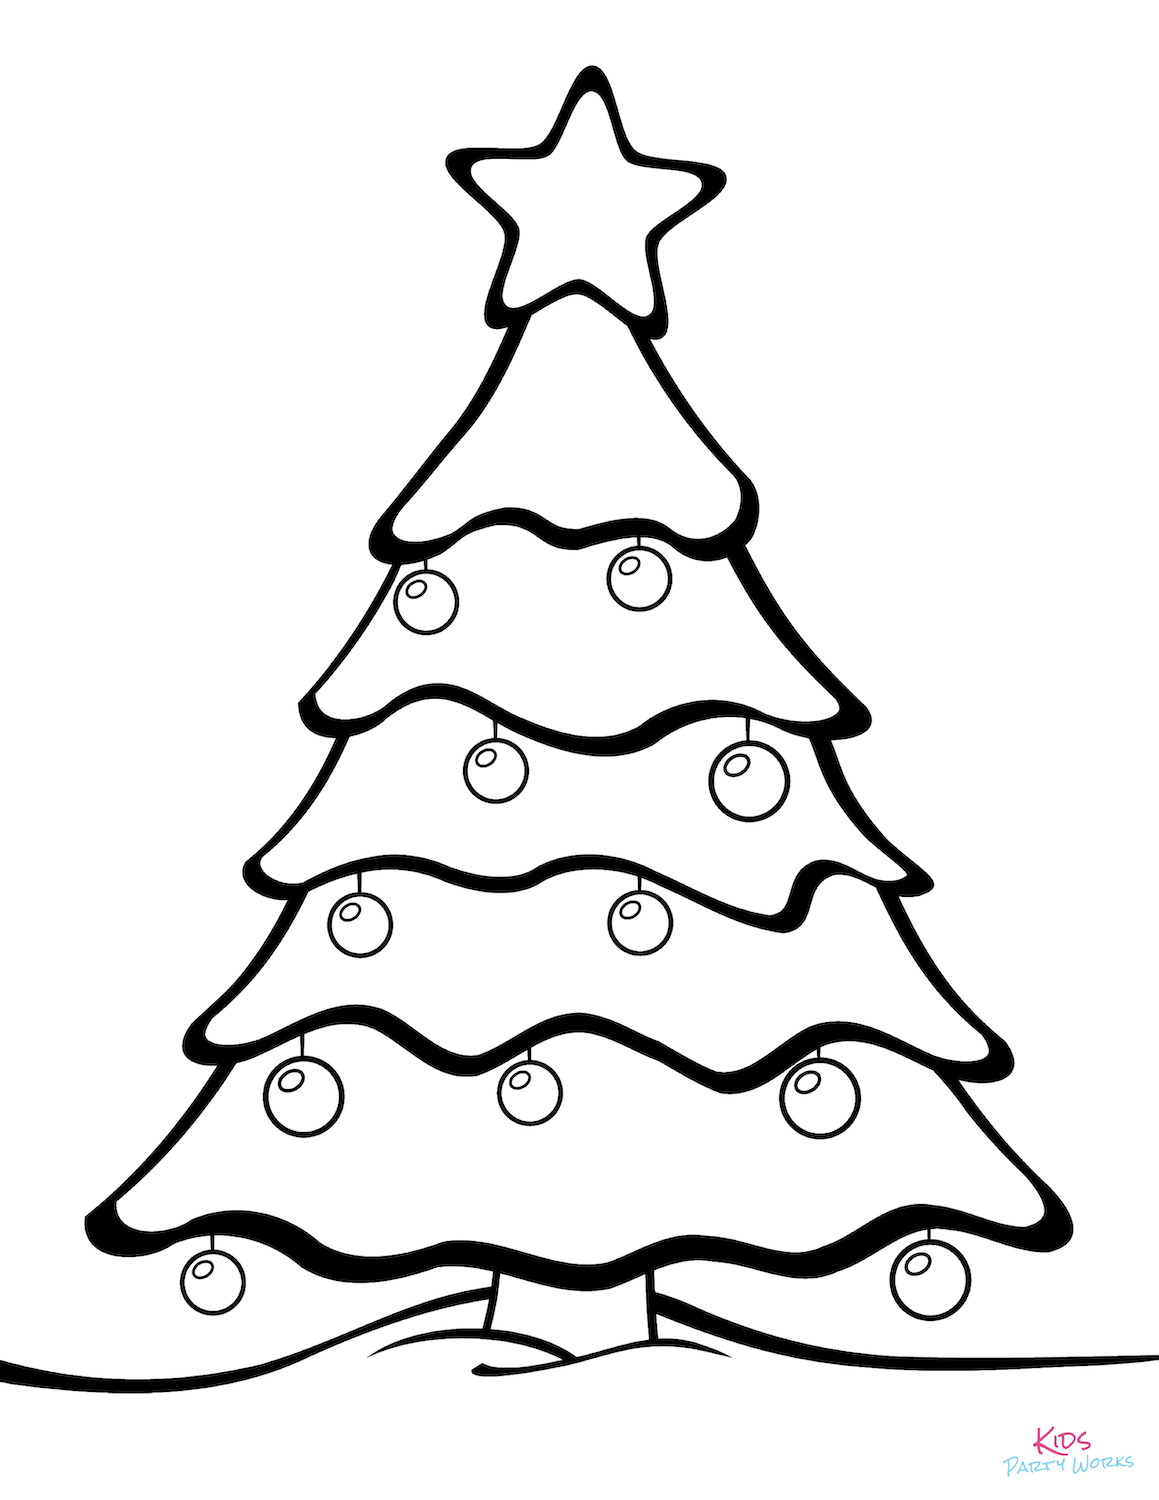 Printable Santa Coloring Pages For Kids | Santa coloring pages ... | 1500x1159